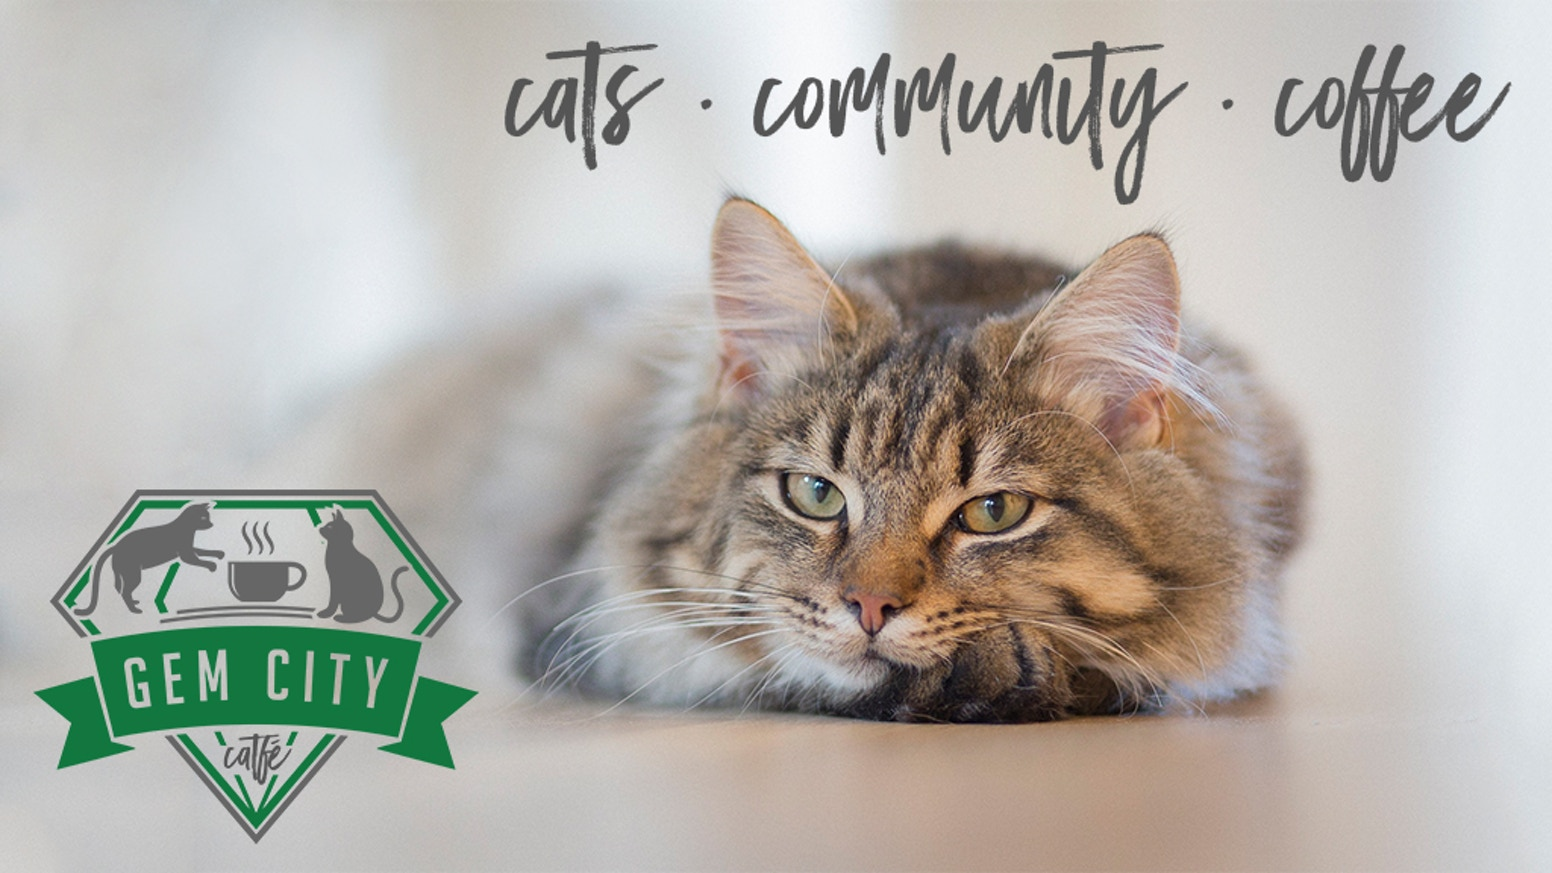 Gem City Catfé is a comfortable coffee house in Dayton, OH, home to adoptable rescue cats, with a community focus.